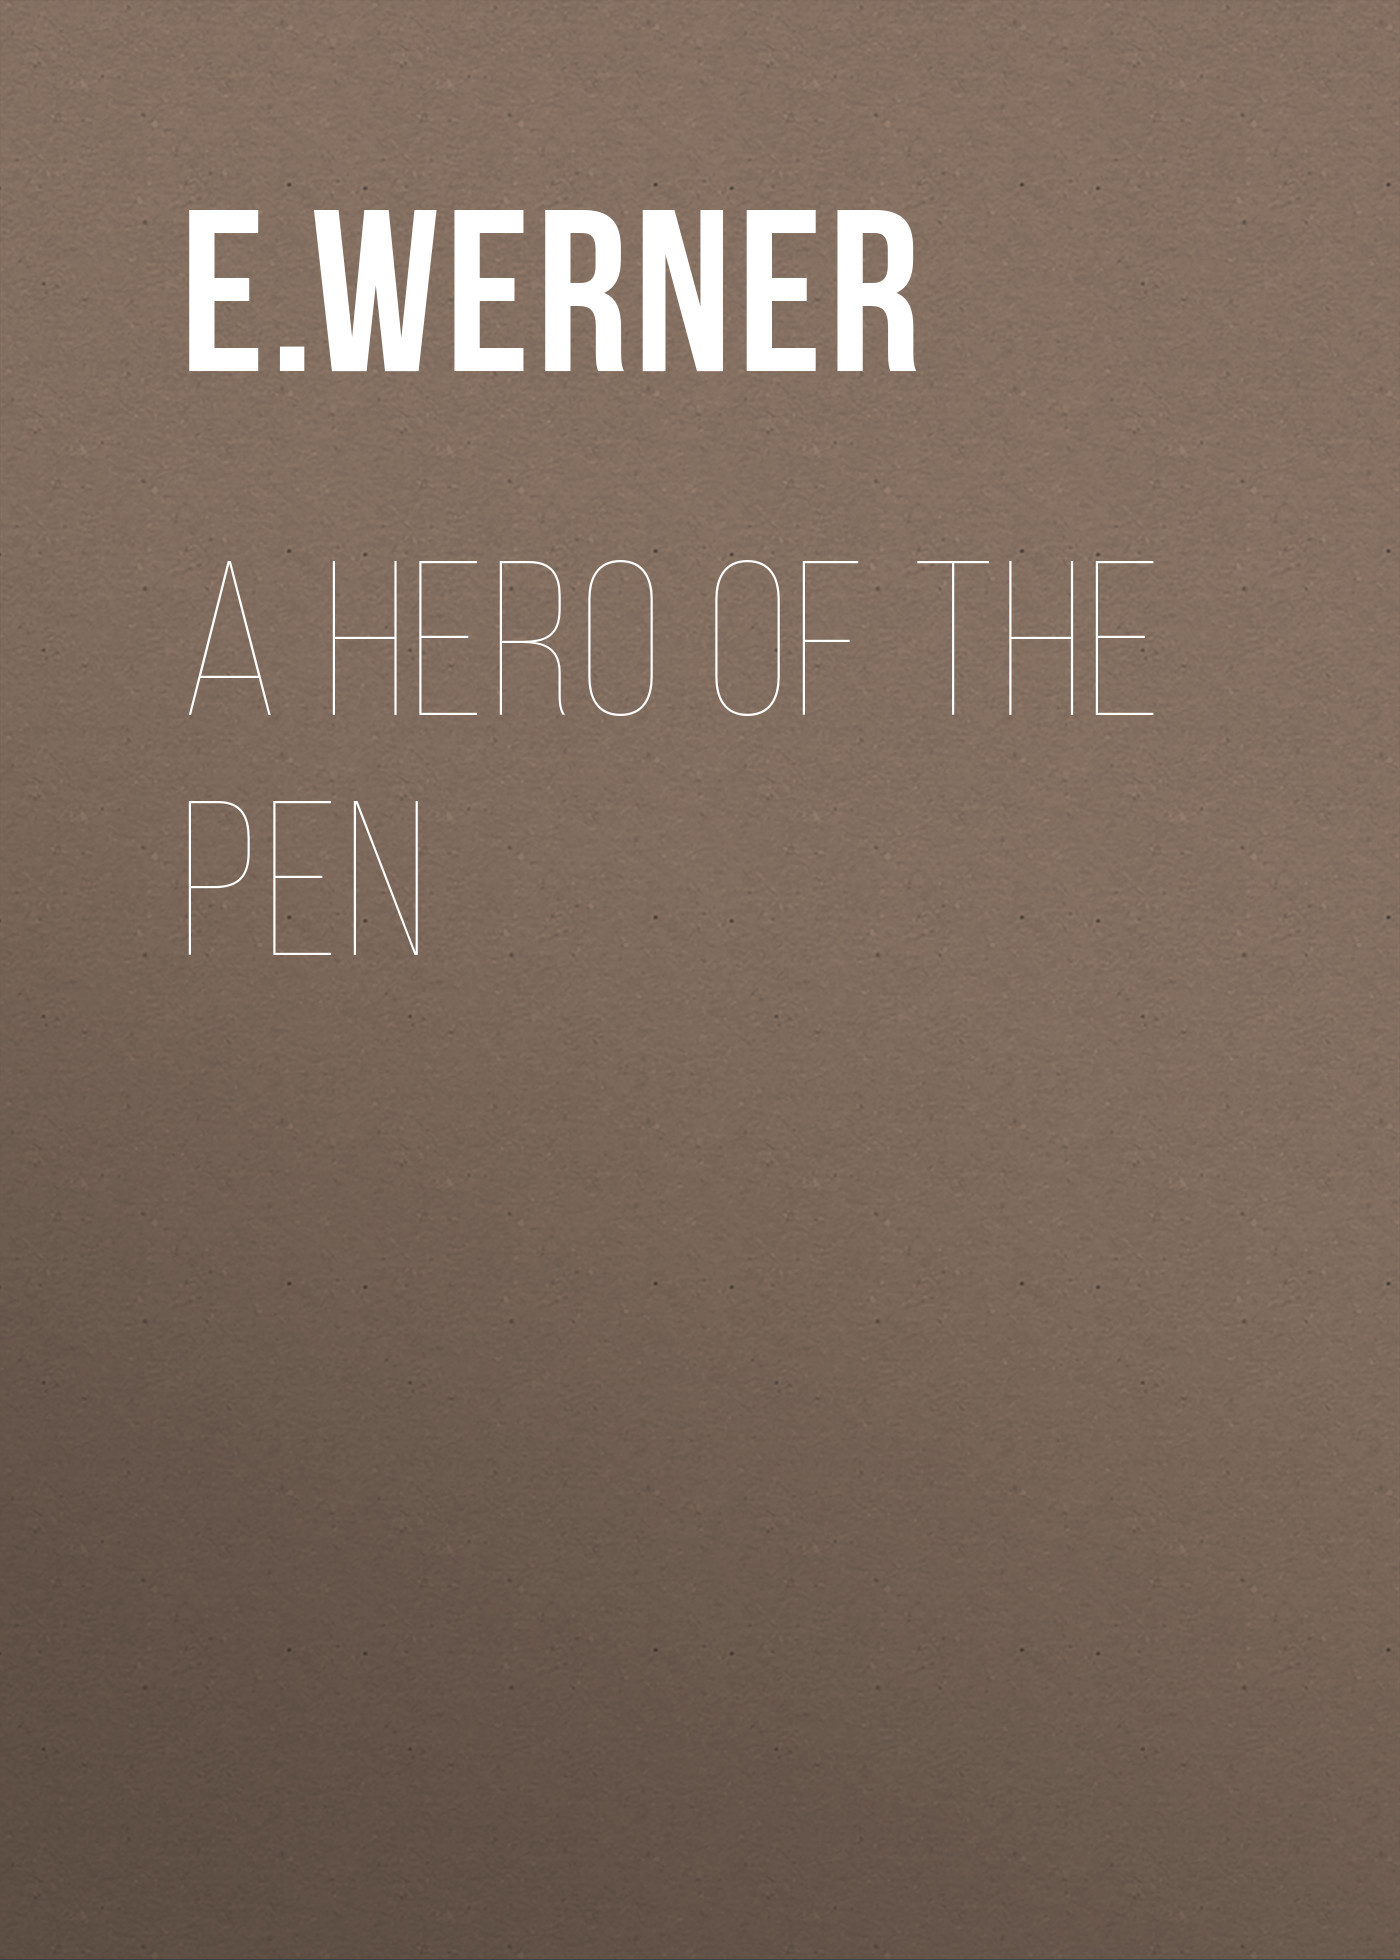 E. Werner A Hero of the Pen 100 8 mcr100 8 sot89 1a600v